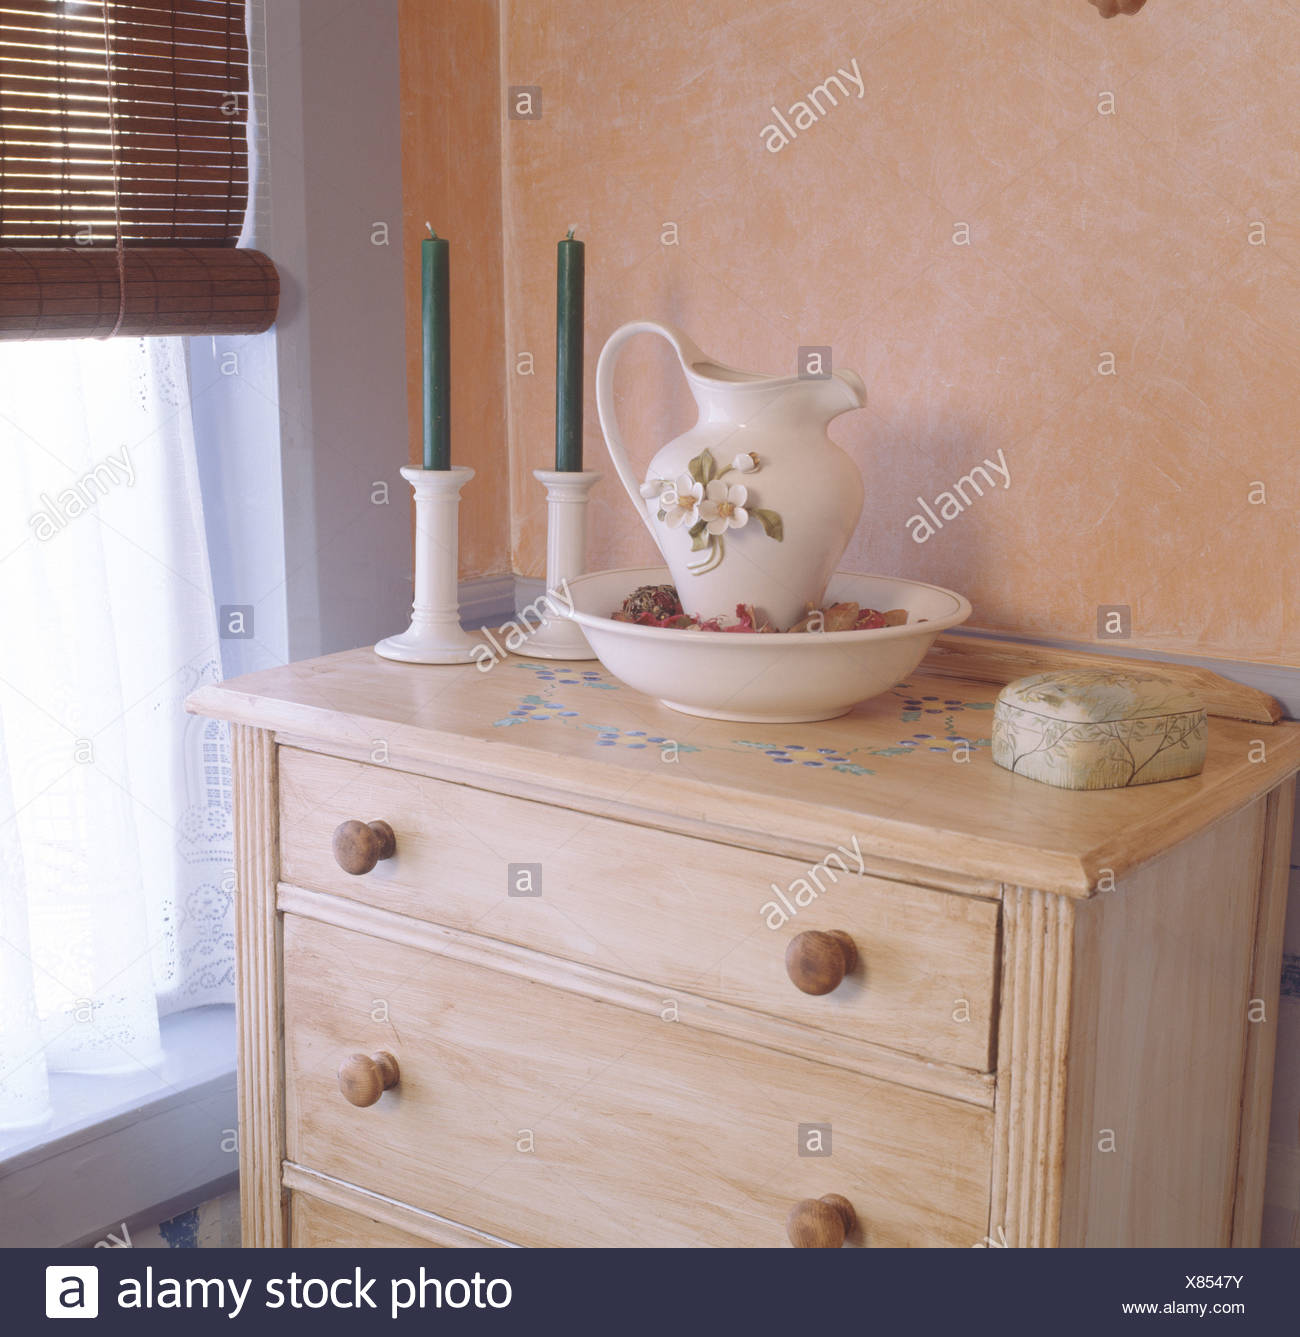 Old Fashioned Jug And Basin On Pale Wood Chest Of Drawers In Economy